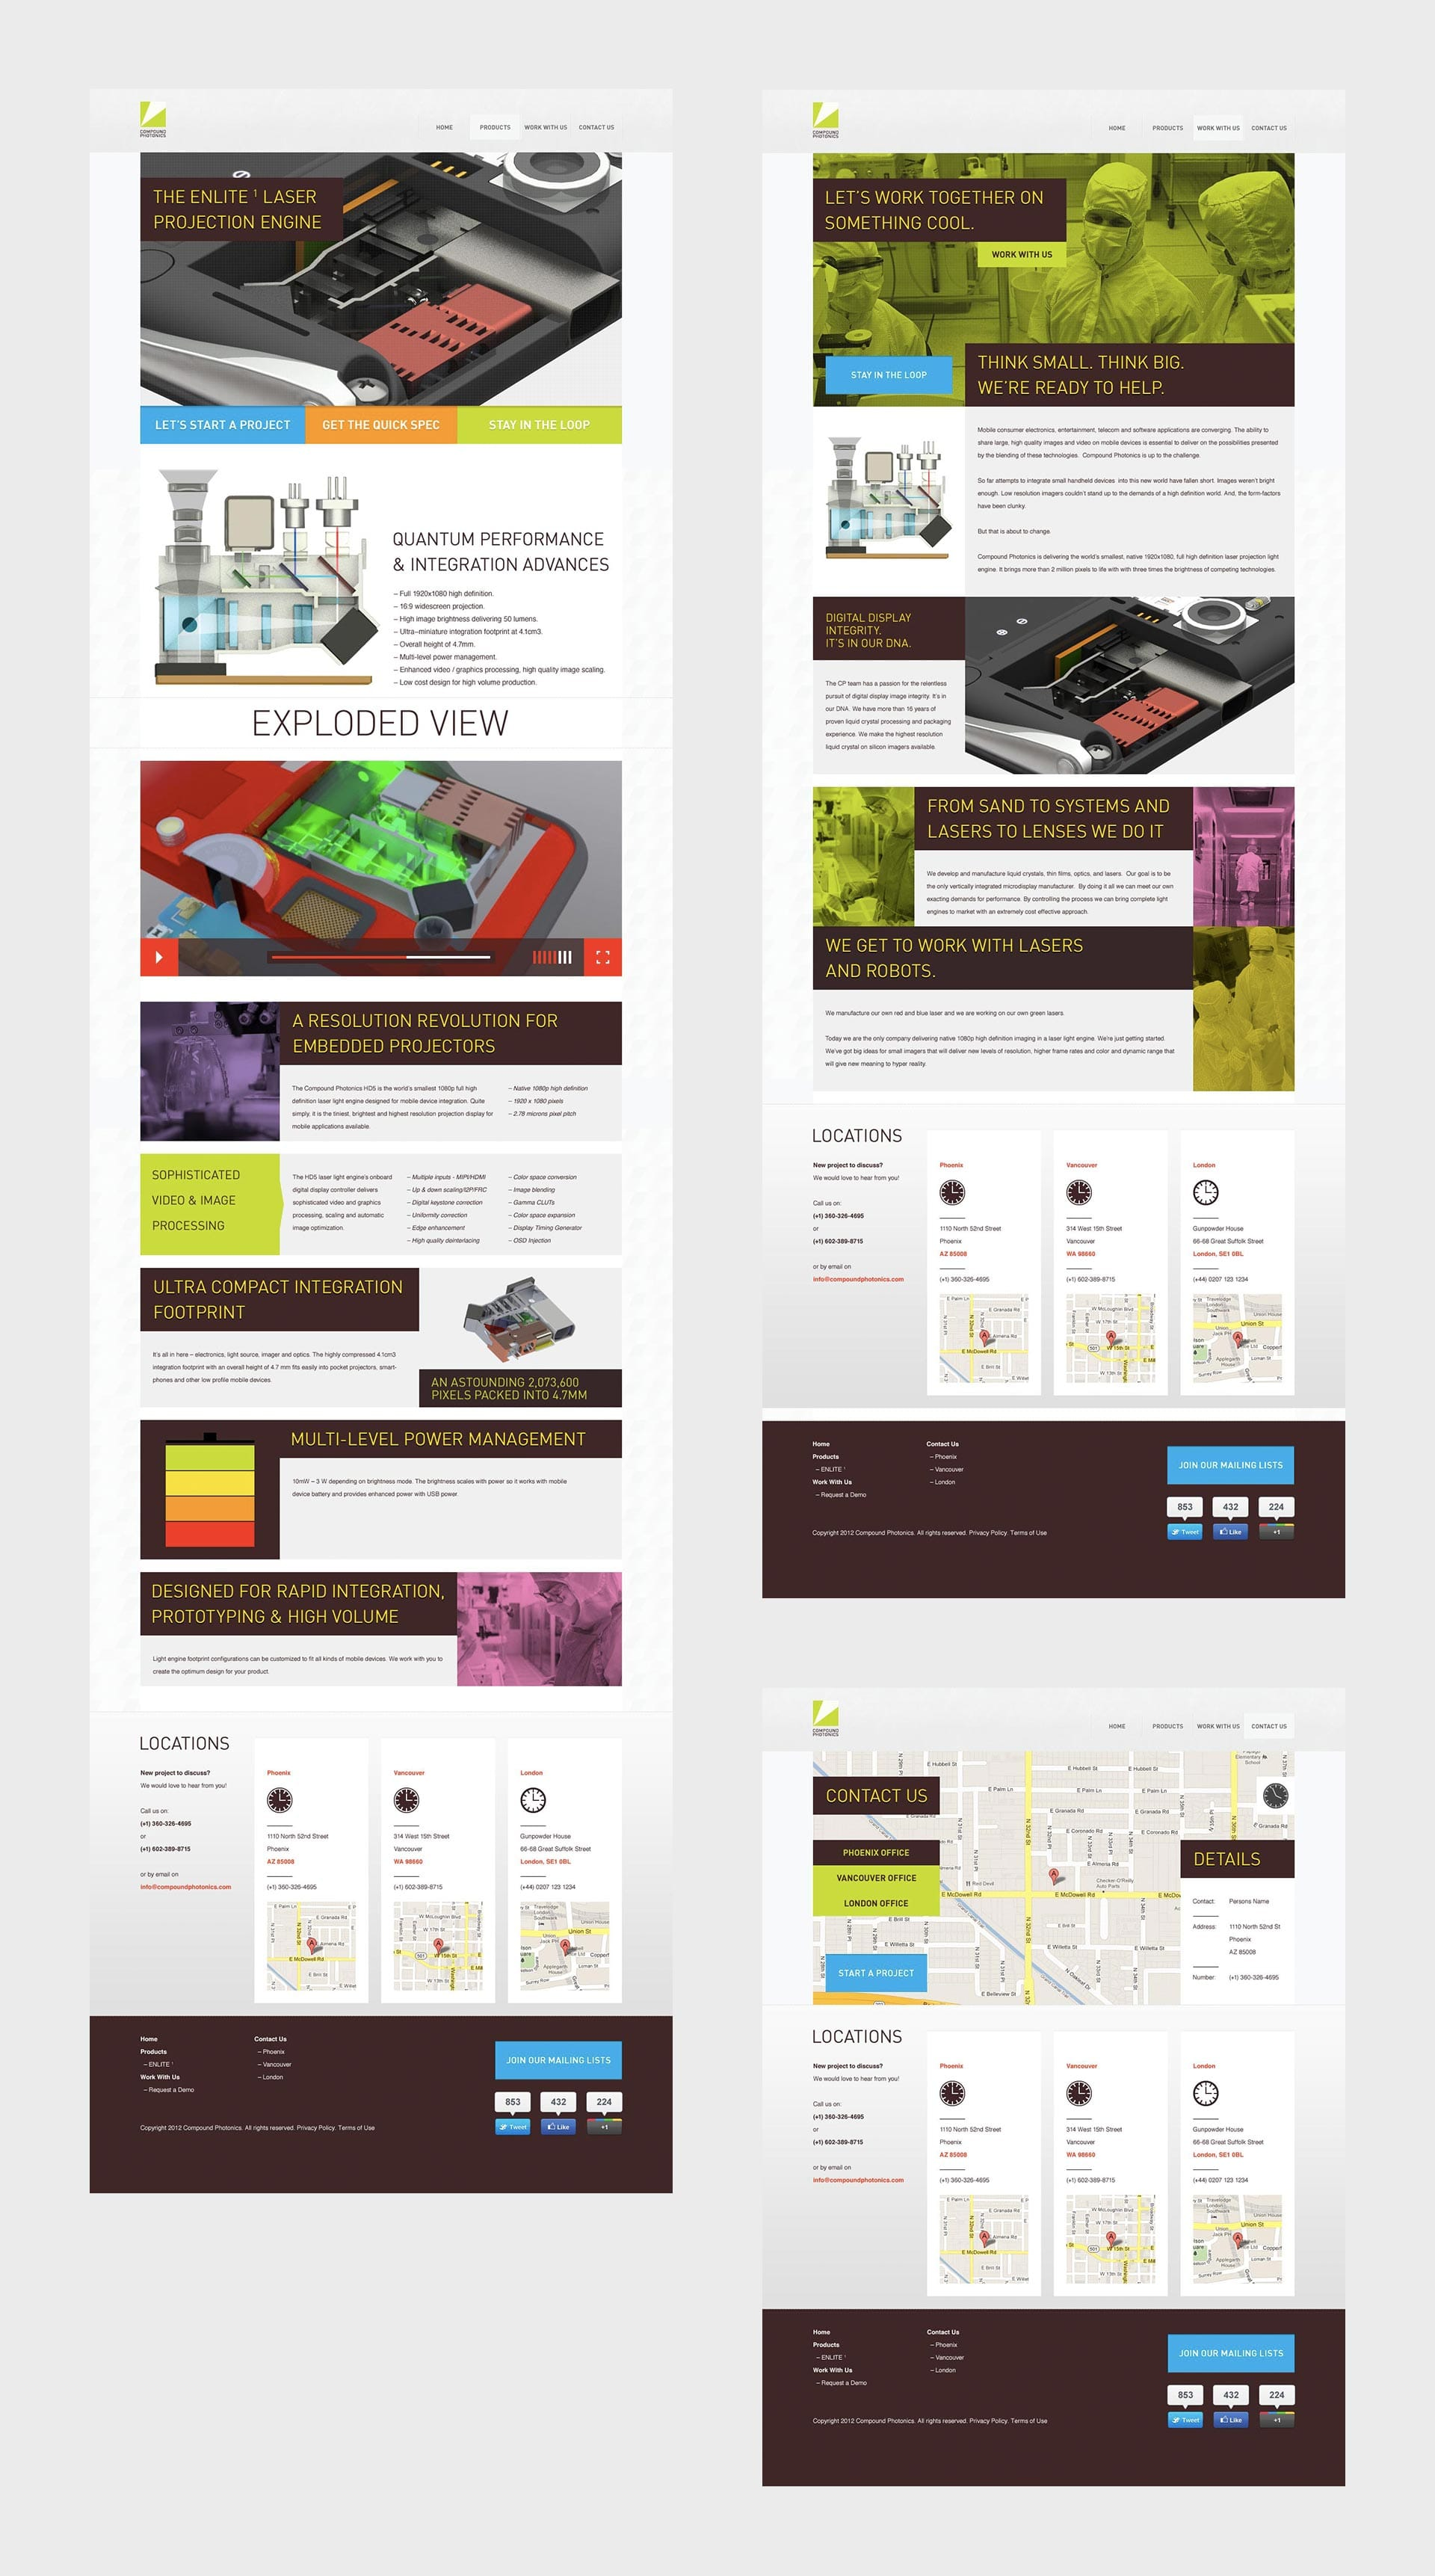 Compound Photonics: Branding & Website - Website